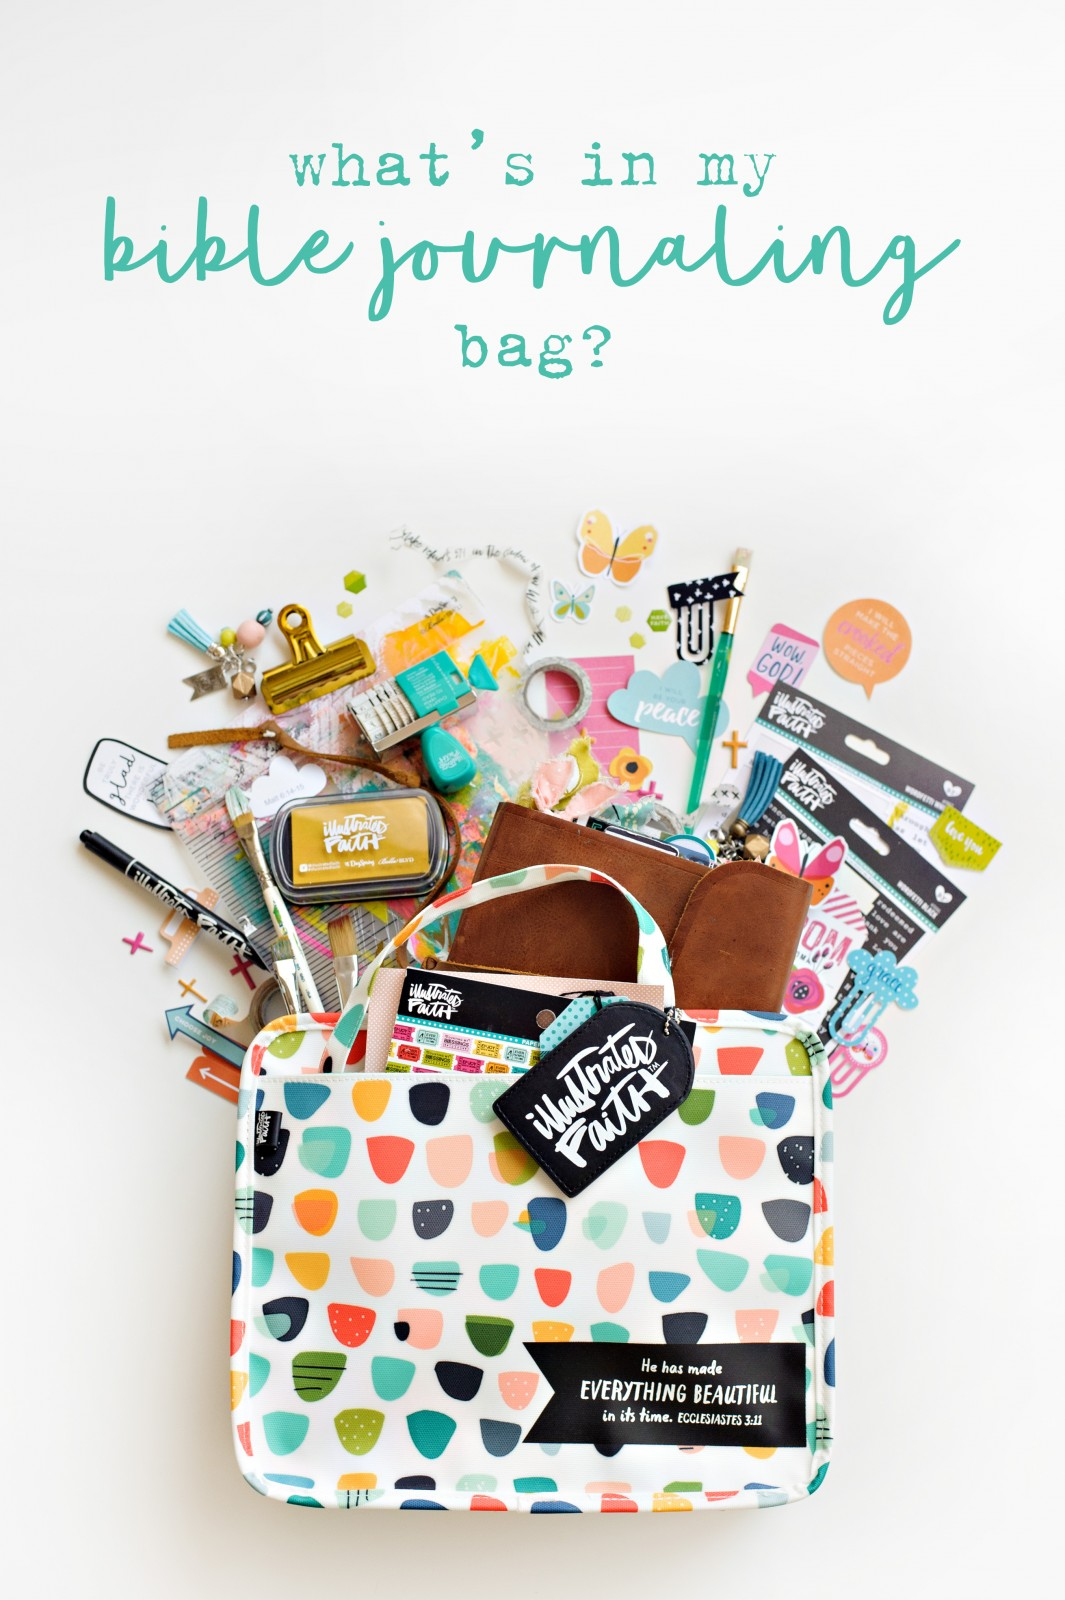 List of what's in Shanna Noel's Illustrated Faith Bible Journaling Bag